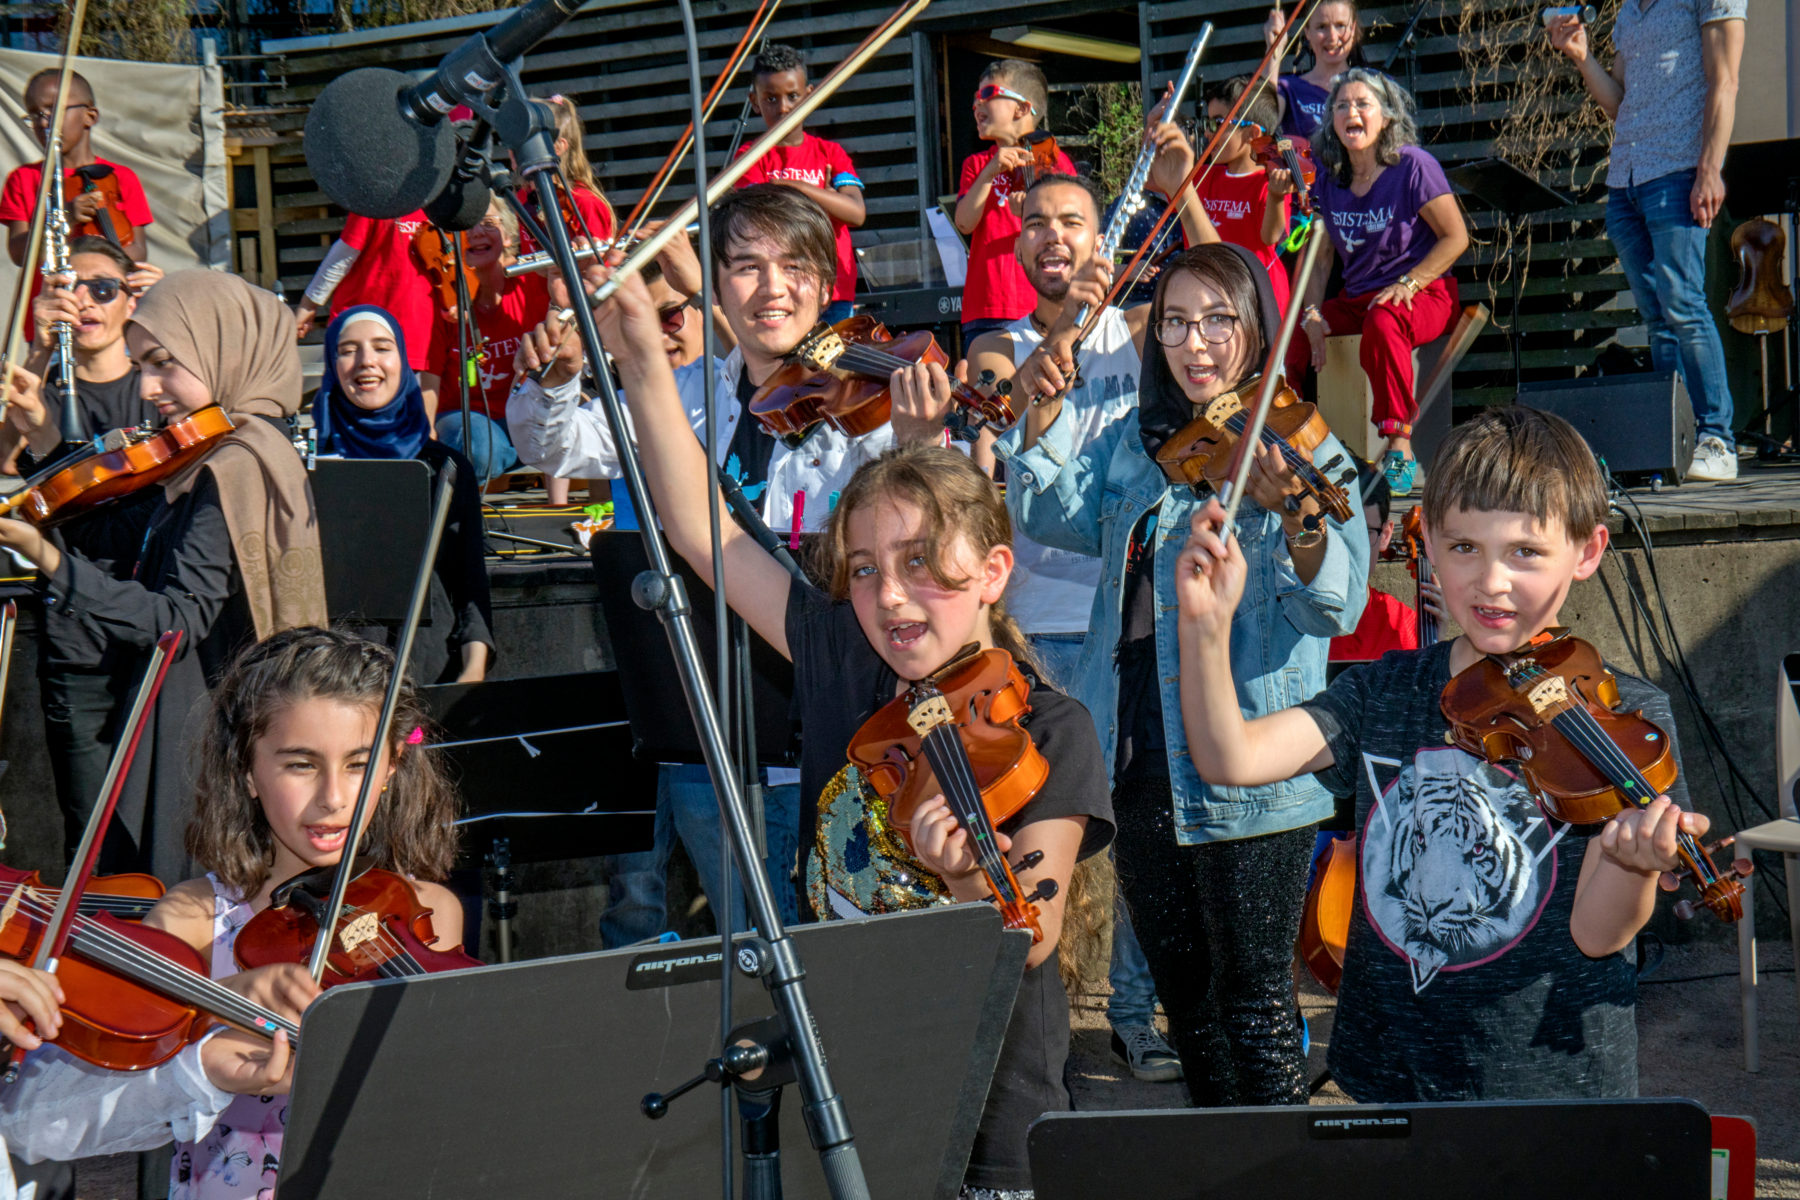 Photo: Lisa Thanner / El Sistema Foundation Sweden